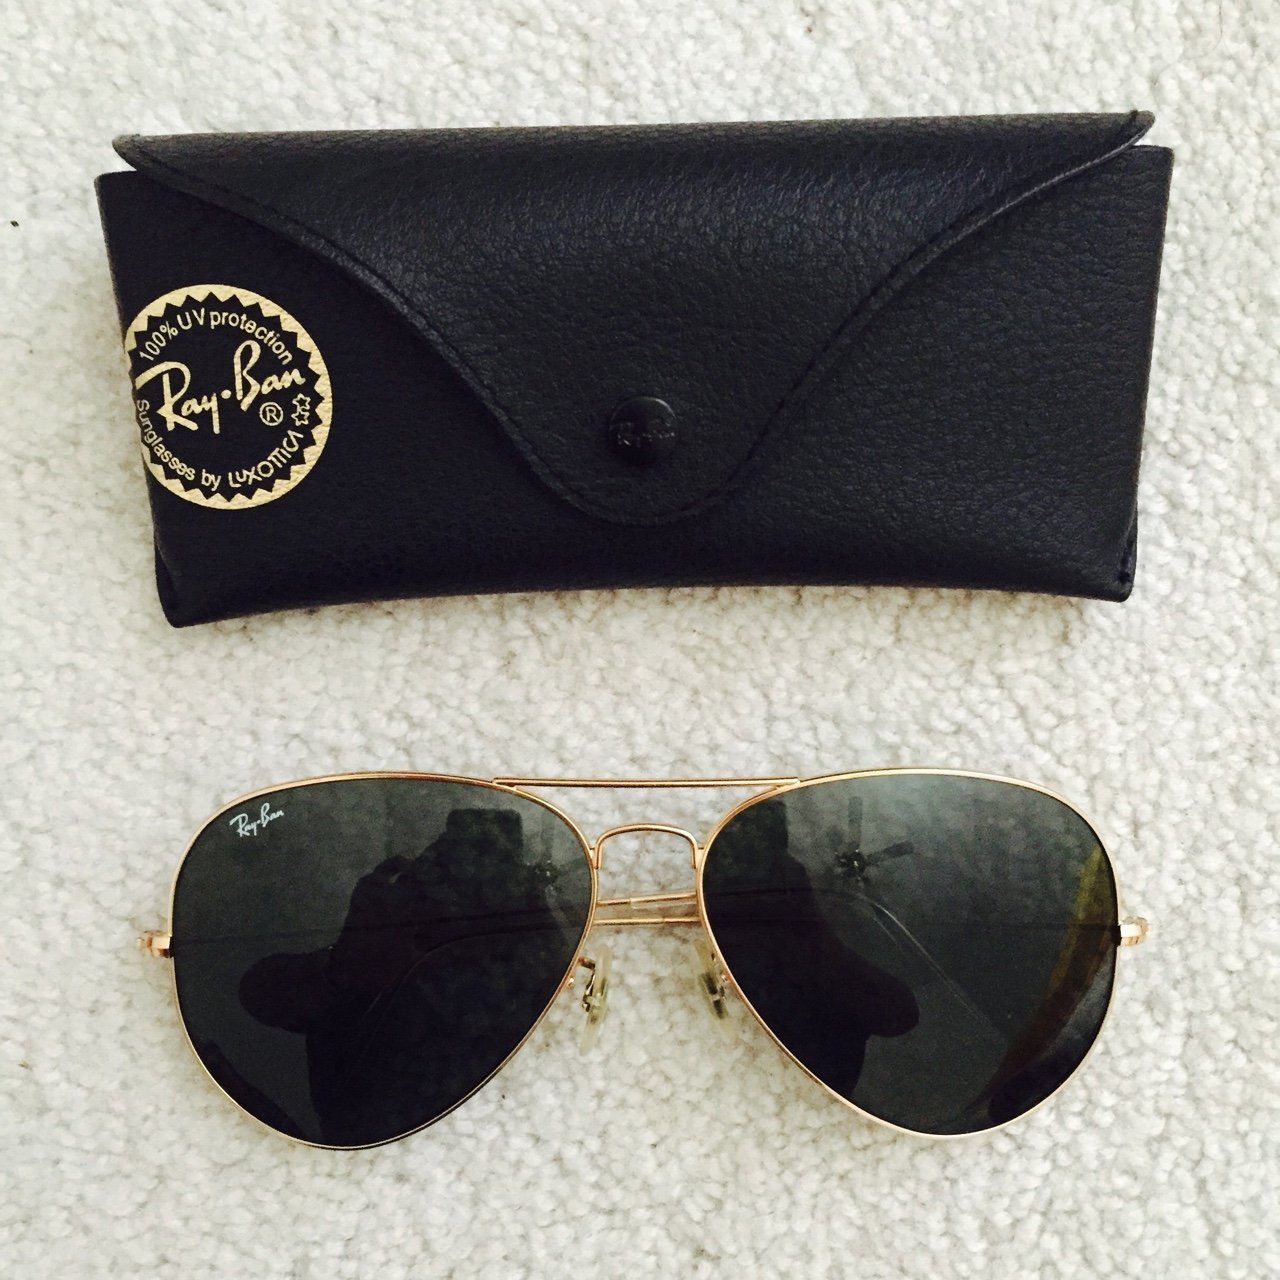 12db01e721d New Ray bans with case! Barely worn! Gold metal sunglasses - Depop